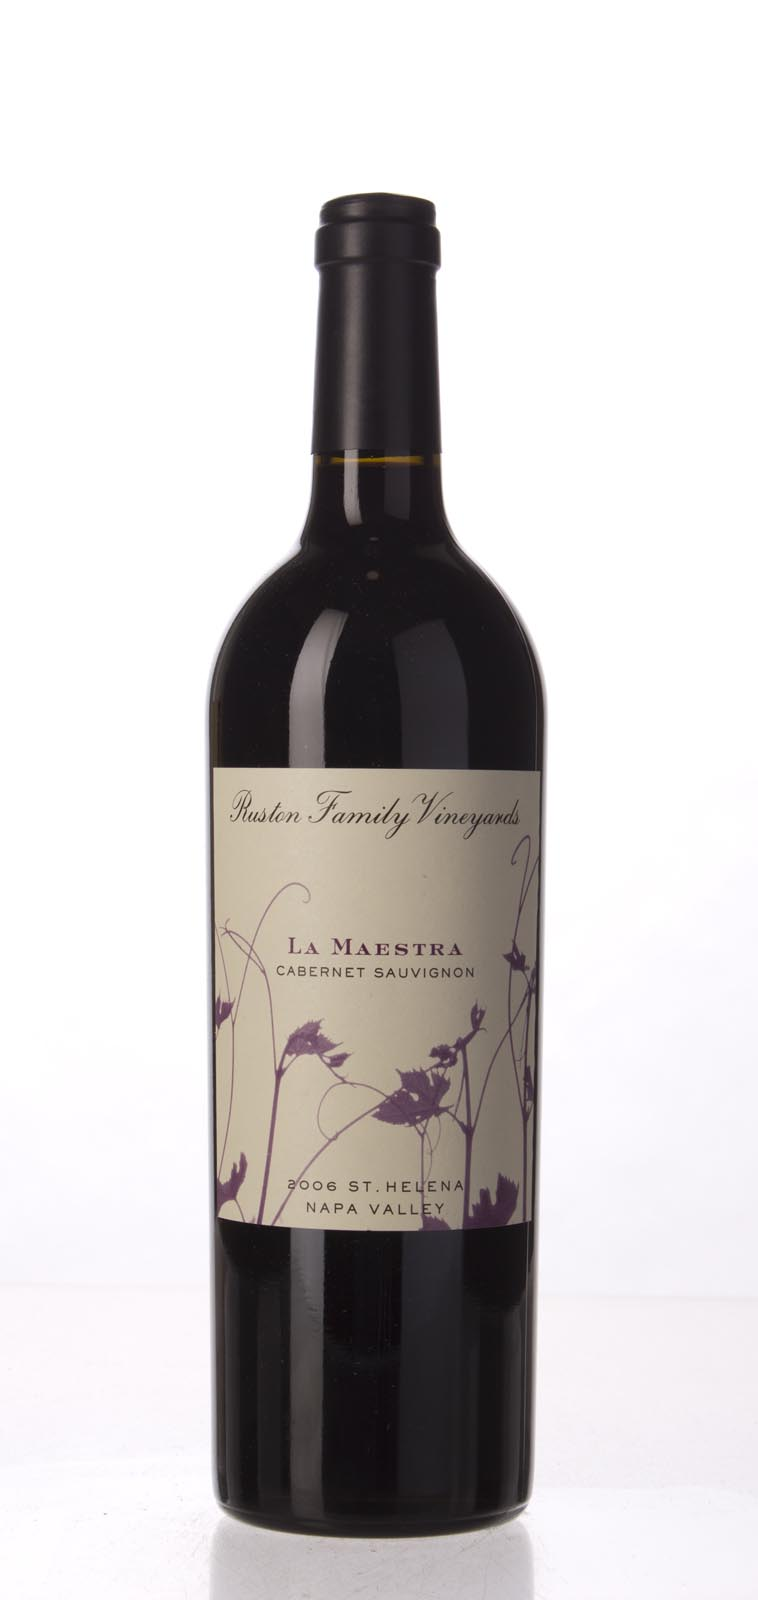 Ruston Family Vineyards La Maestra 2006, 750mL (WA89) from The BPW - Merchants of rare and fine wines.